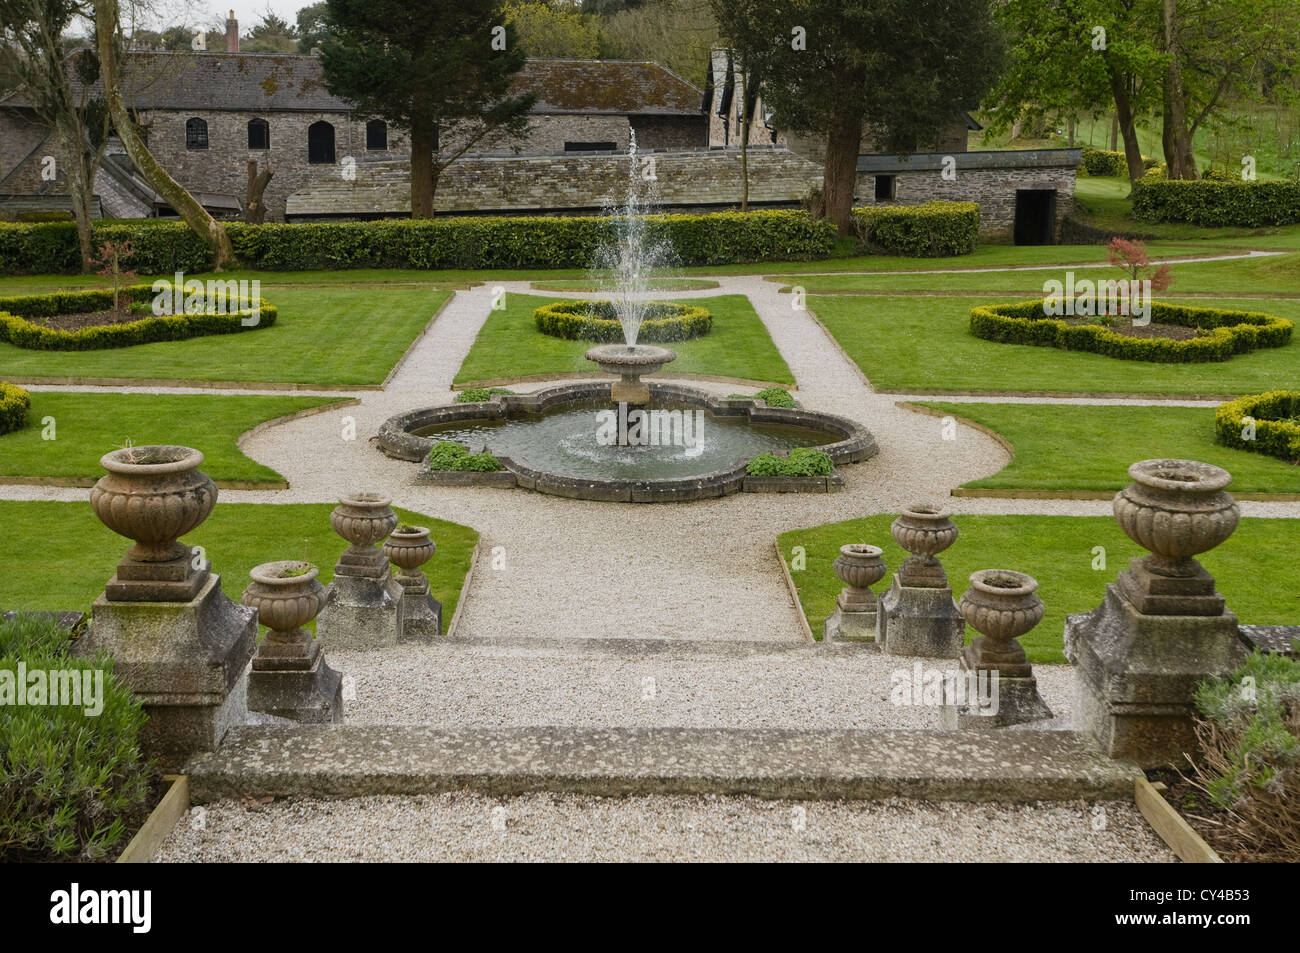 Gardens and fountain at Prideaux Place, an Elizabethan manor in north Cornwall - Stock Image